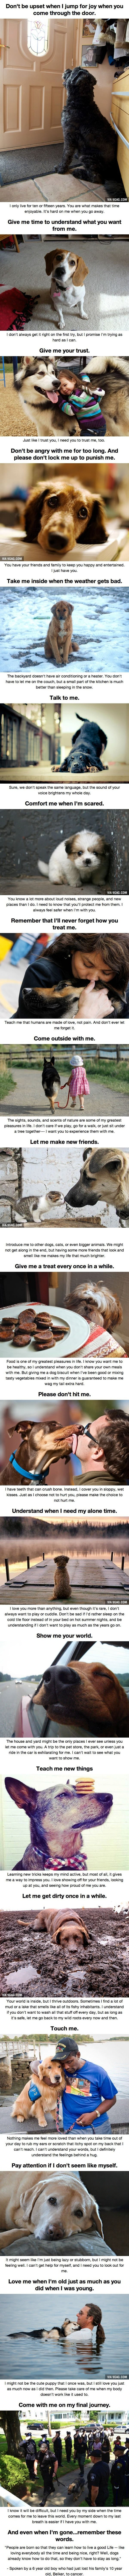 The 20 Important Facts Dog Lovers Must Never Forget -